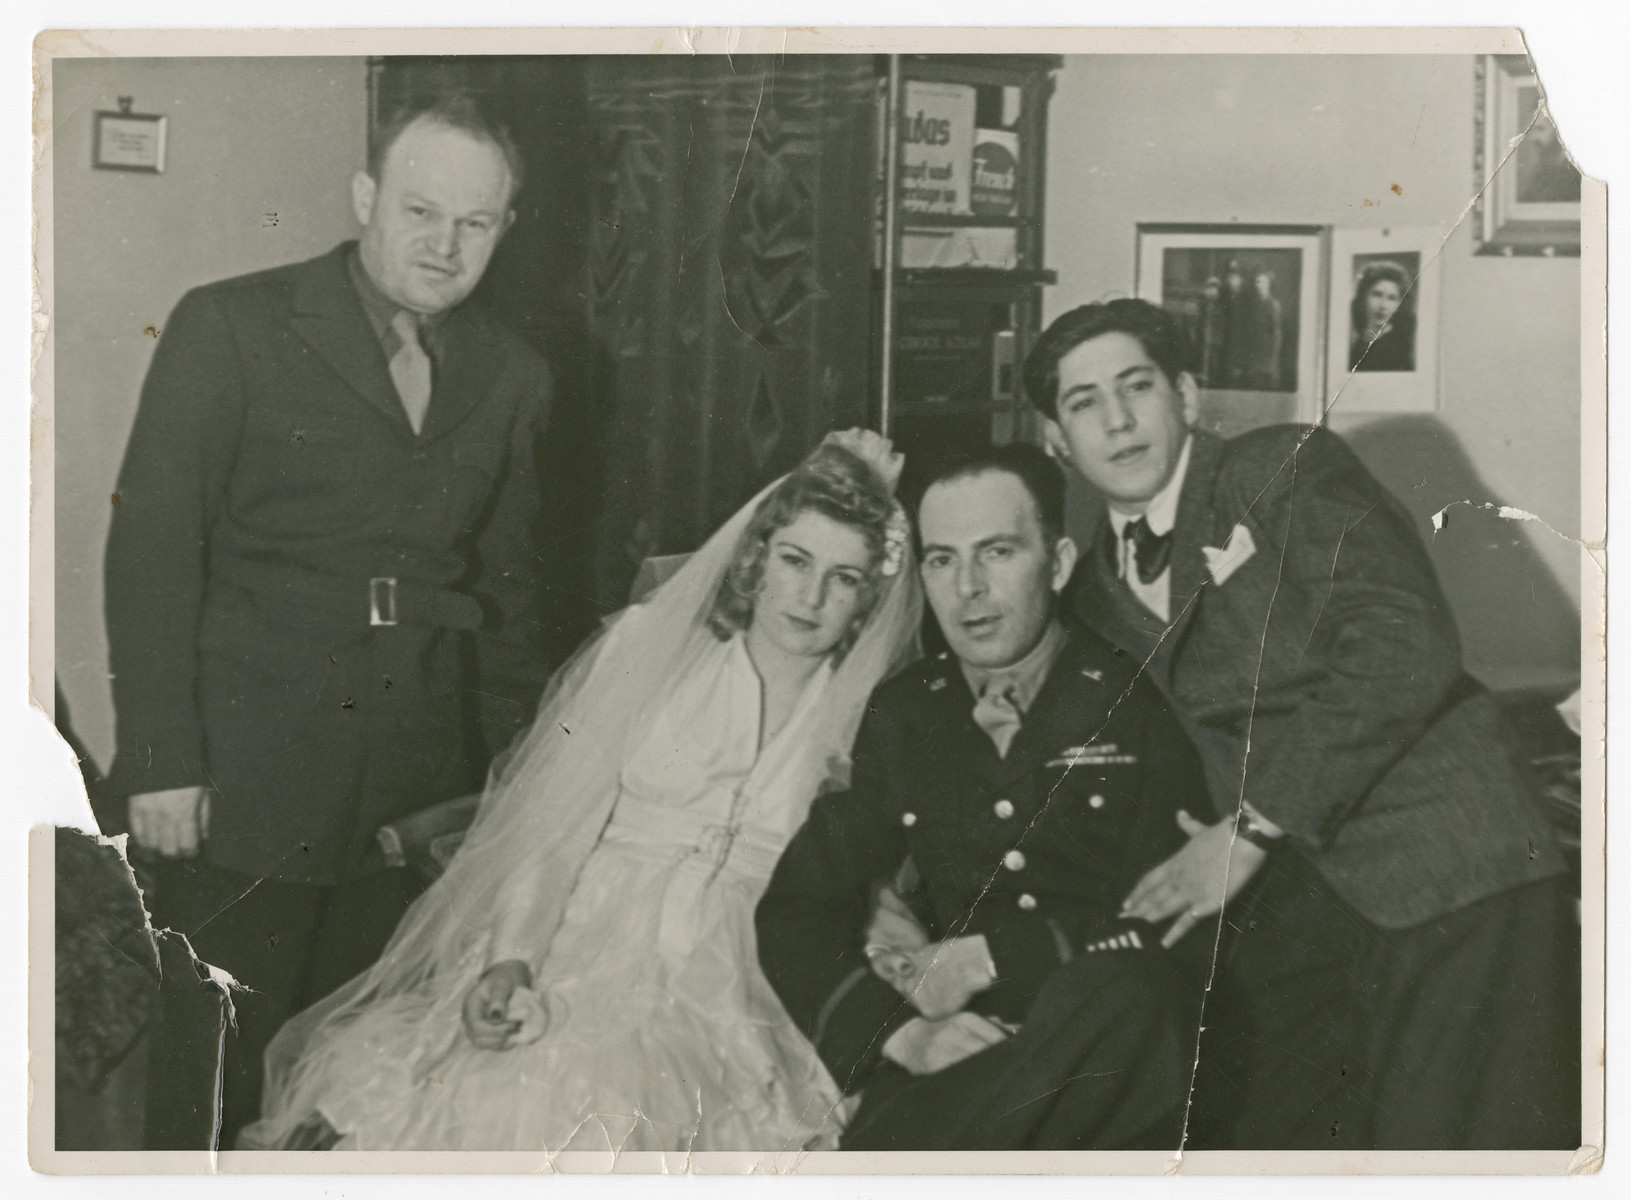 David Eizenberg (left) poses with the bride and groom at the wedding of a displaced person with an American soldier, probably in Berlin.